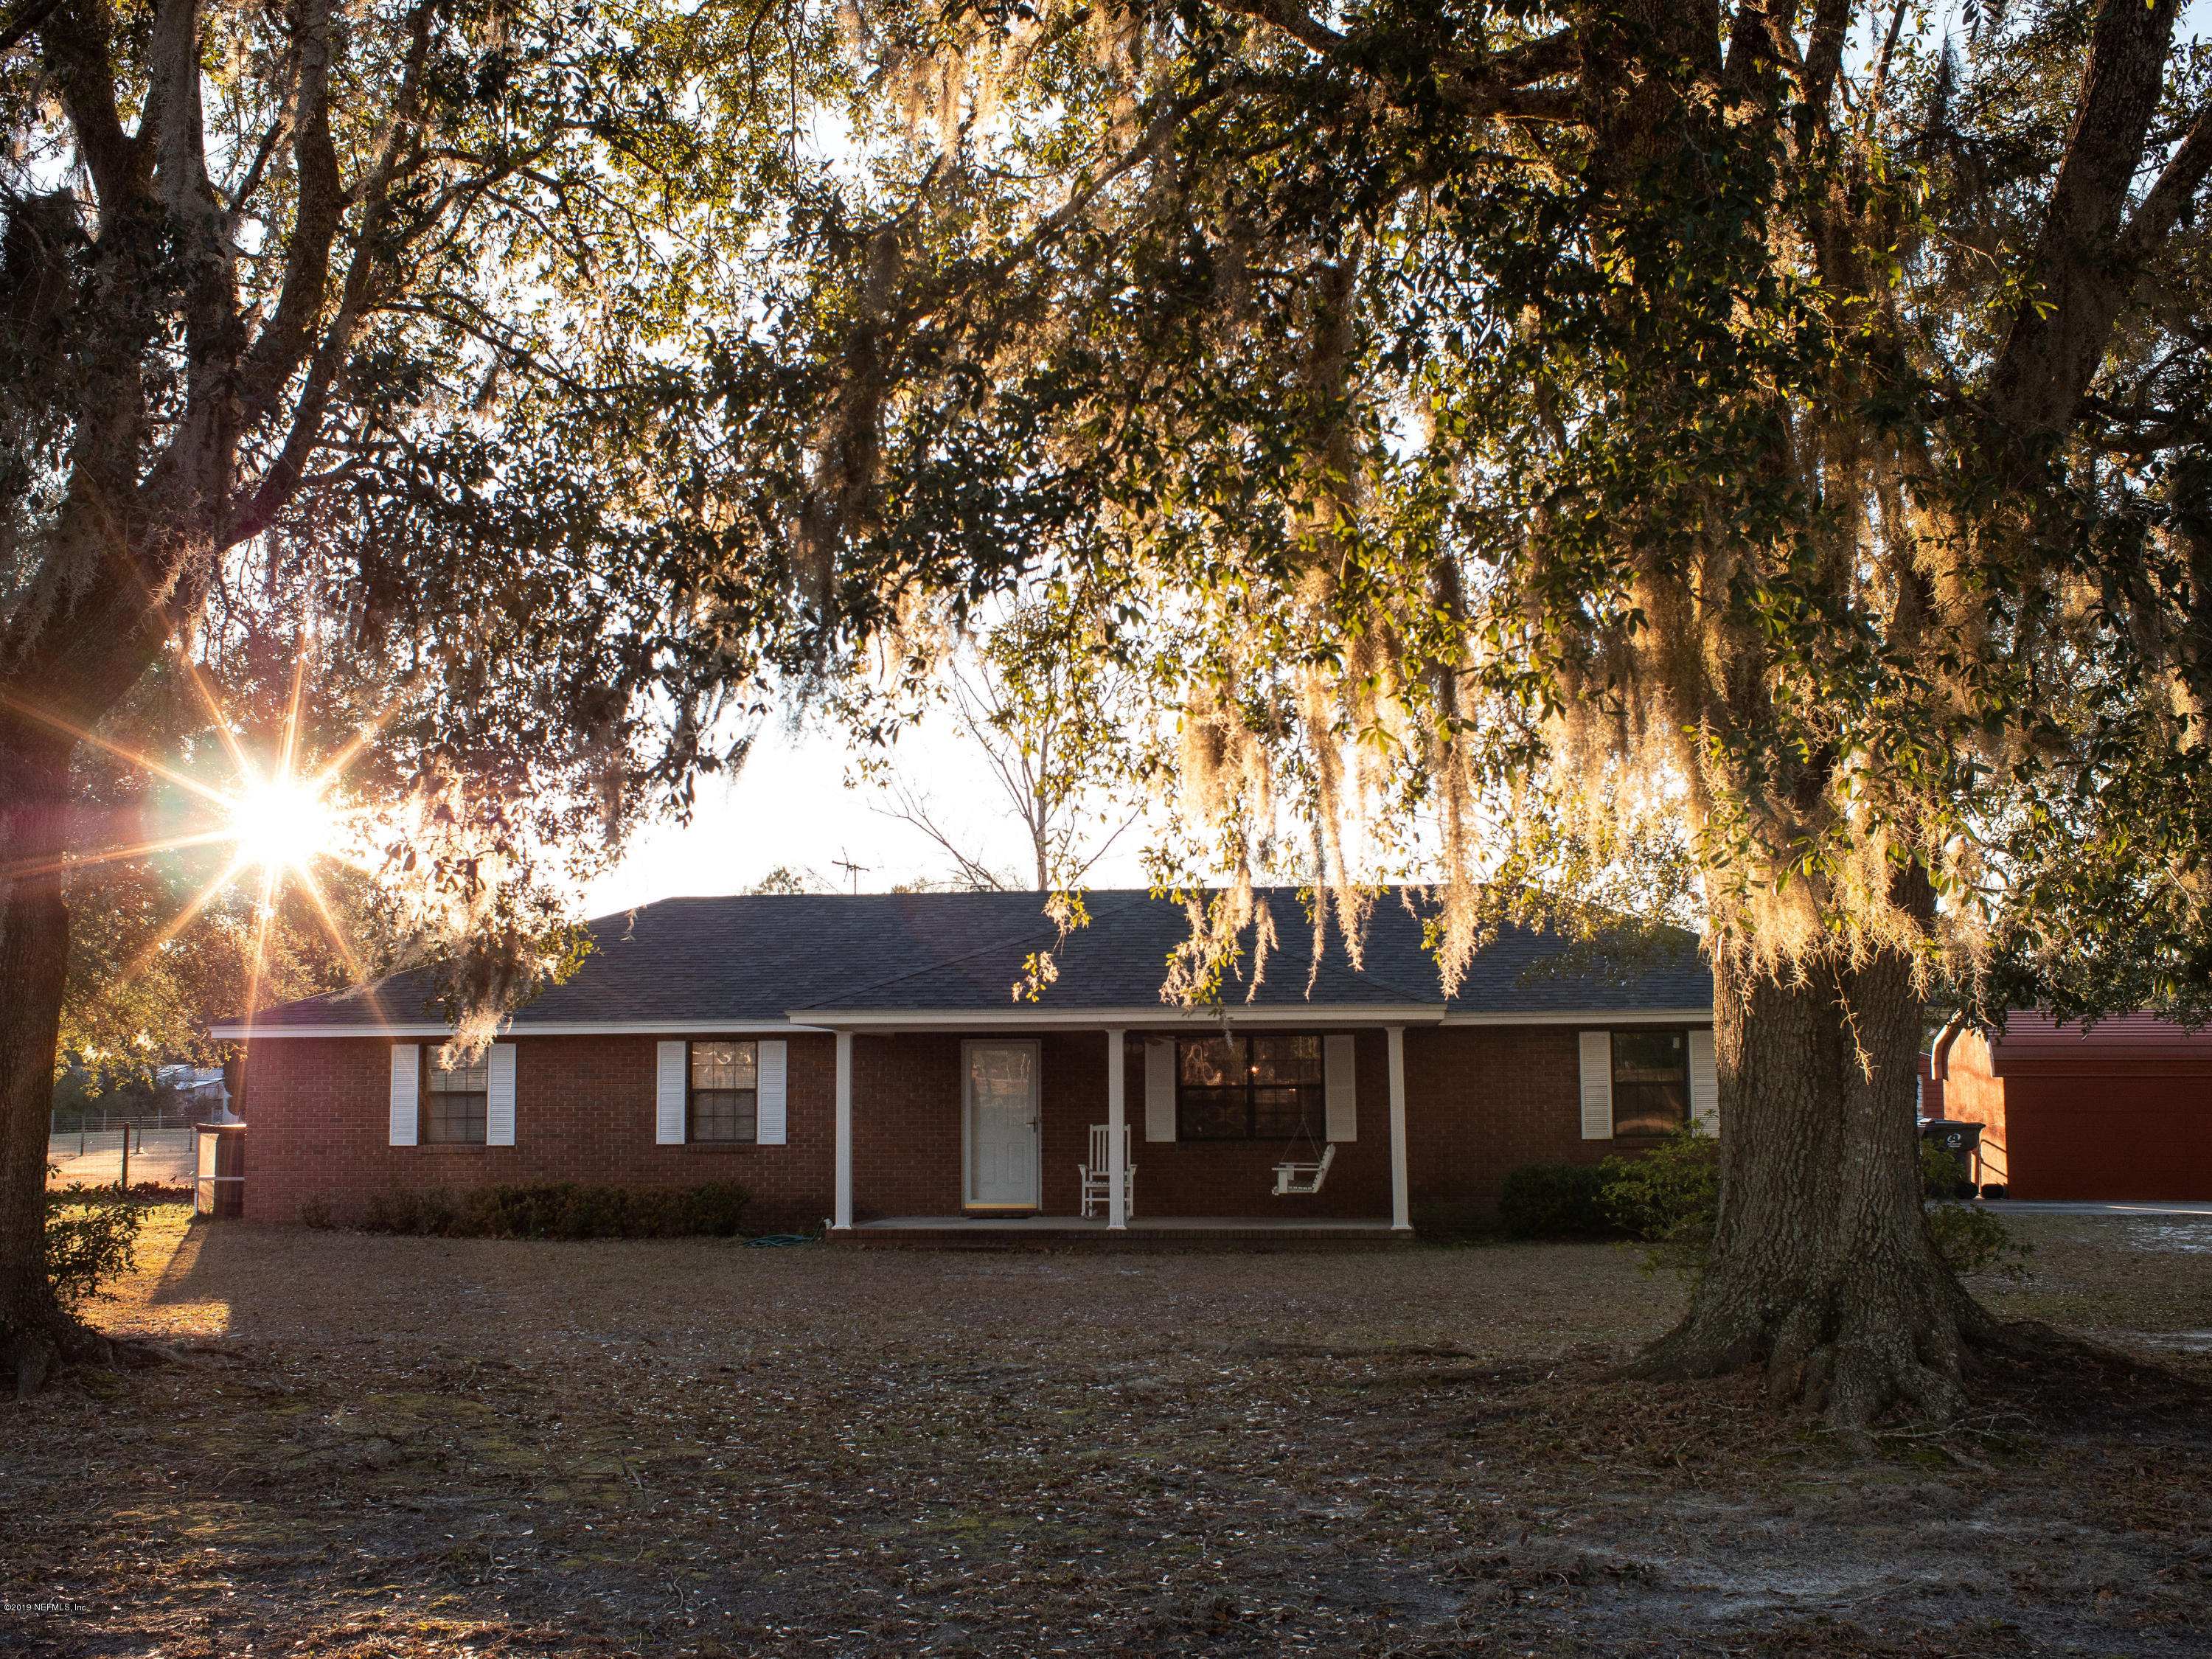 19778 KENNY CONNER, HILLIARD, FLORIDA 32046, 3 Bedrooms Bedrooms, ,2 BathroomsBathrooms,Residential - single family,For sale,KENNY CONNER,975667